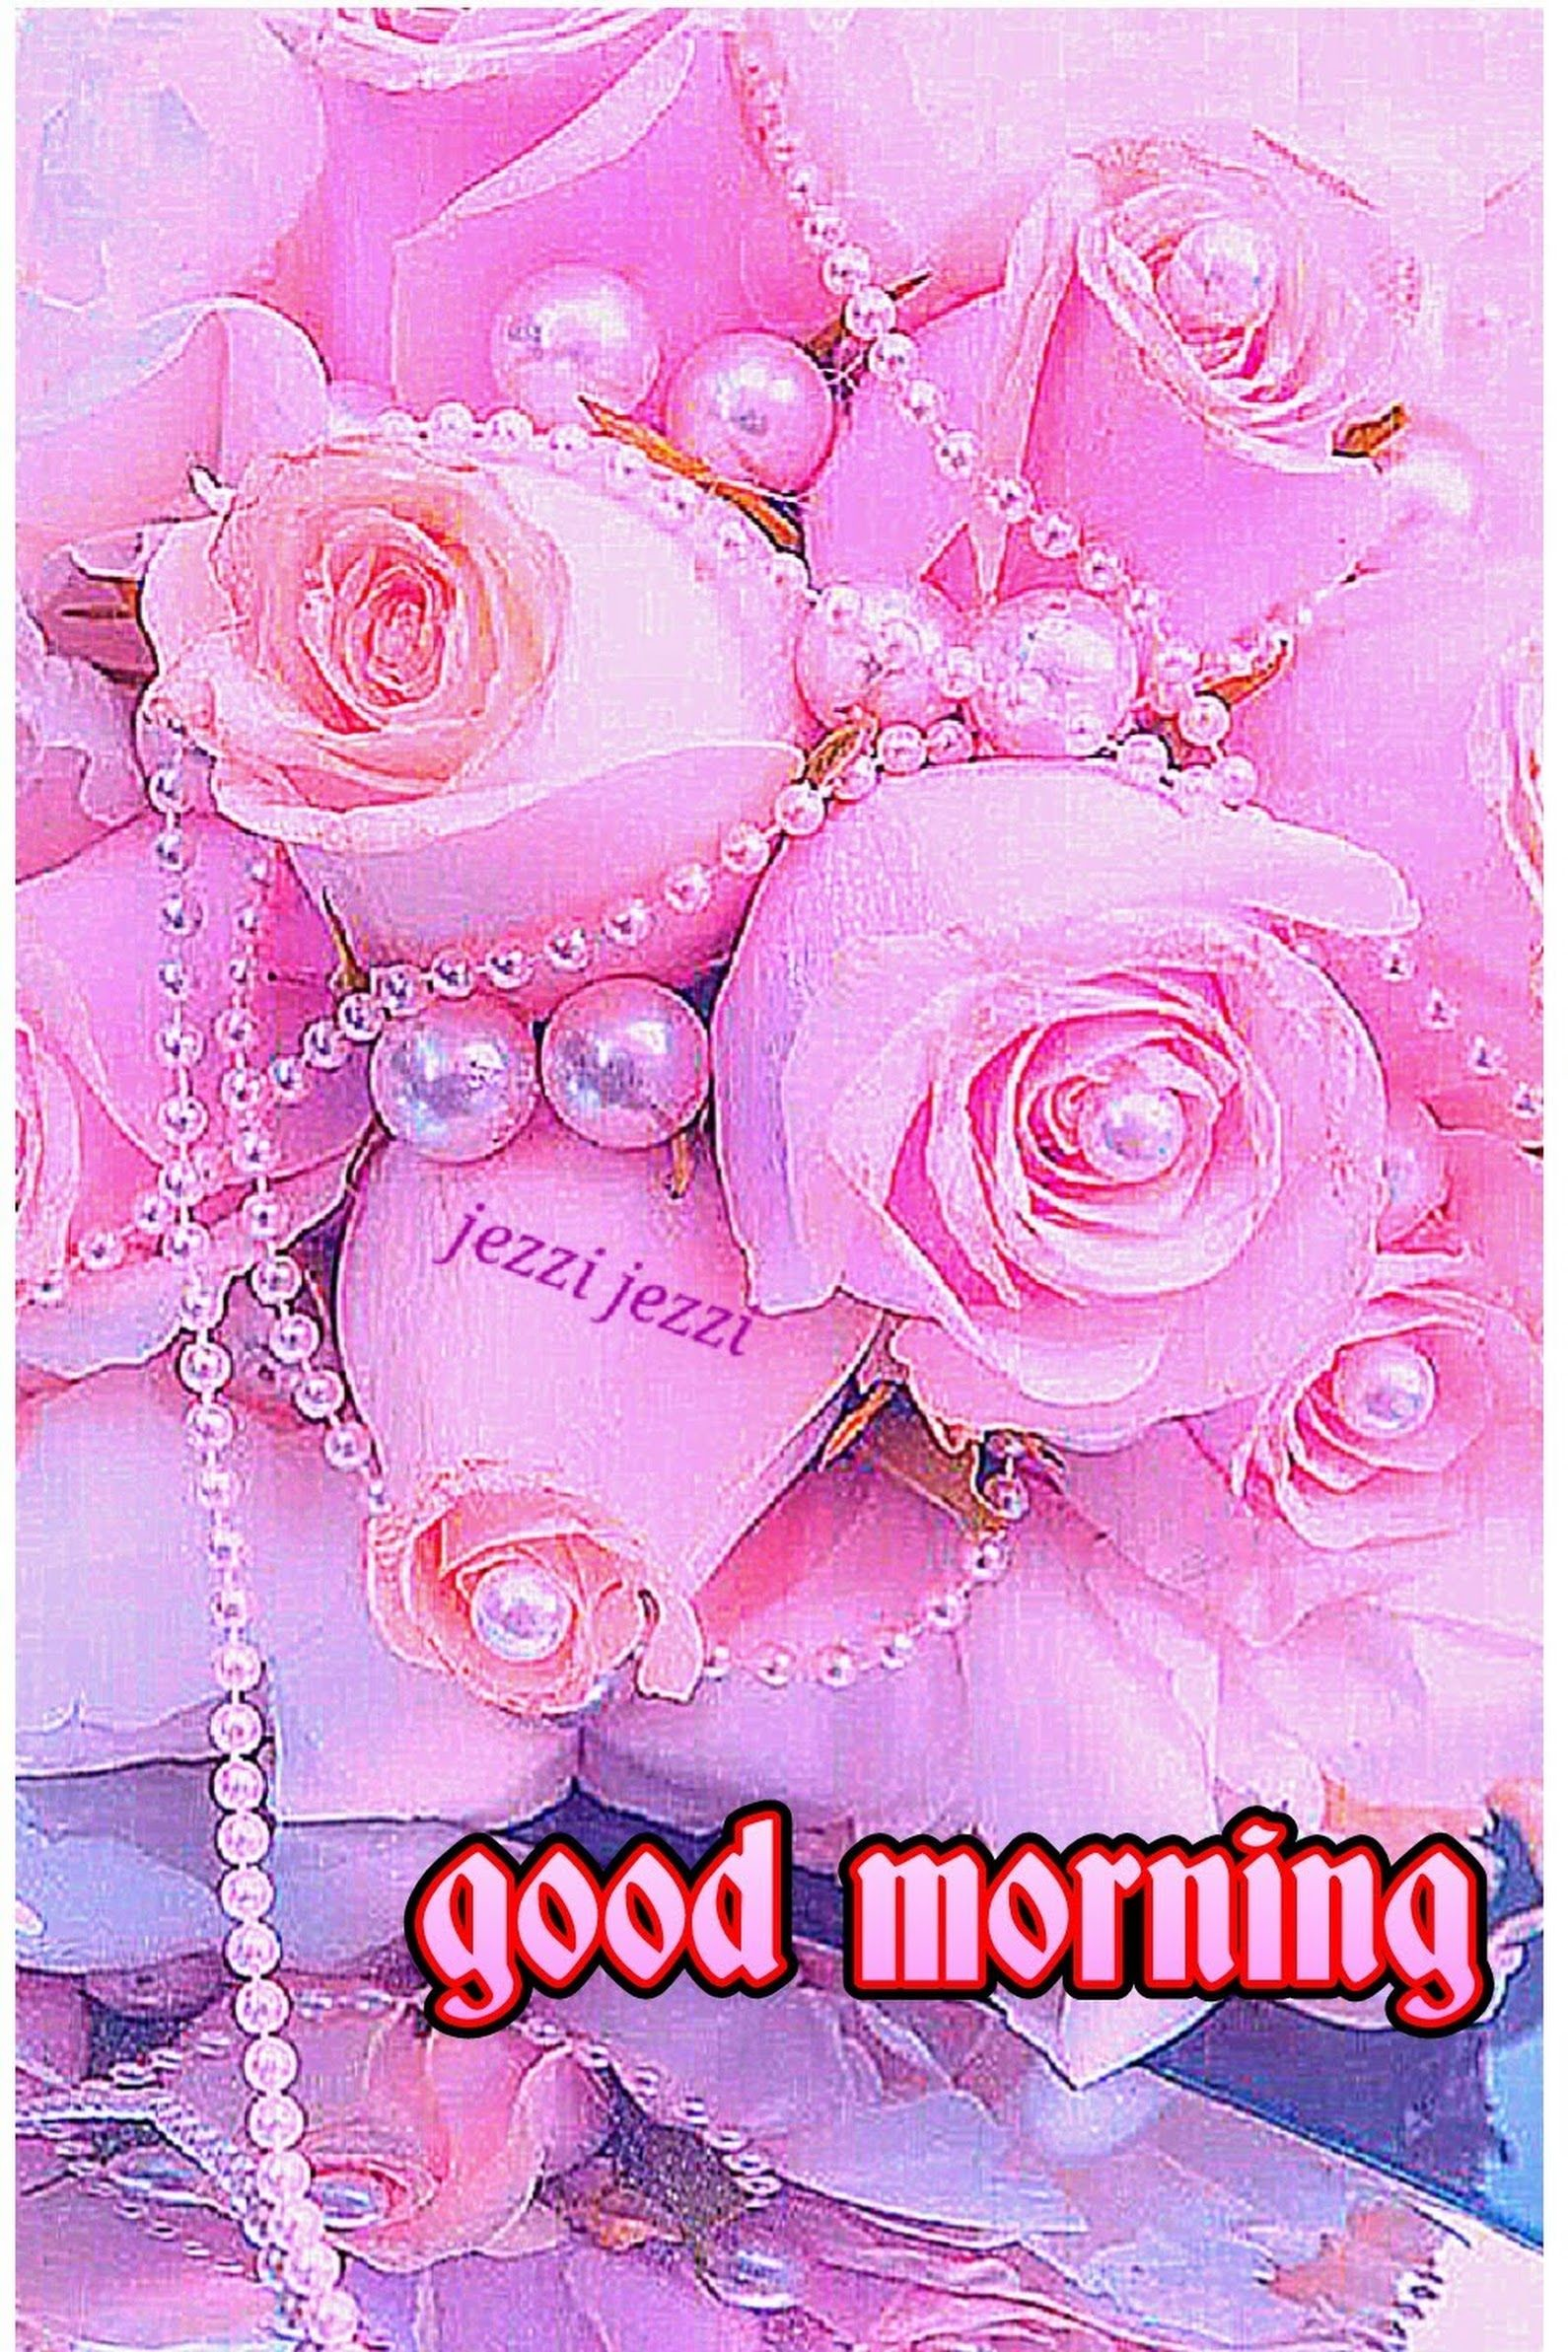 Res: 1590x2385, Good morning sister and yours, have a lovely Friday and a great weekend, God